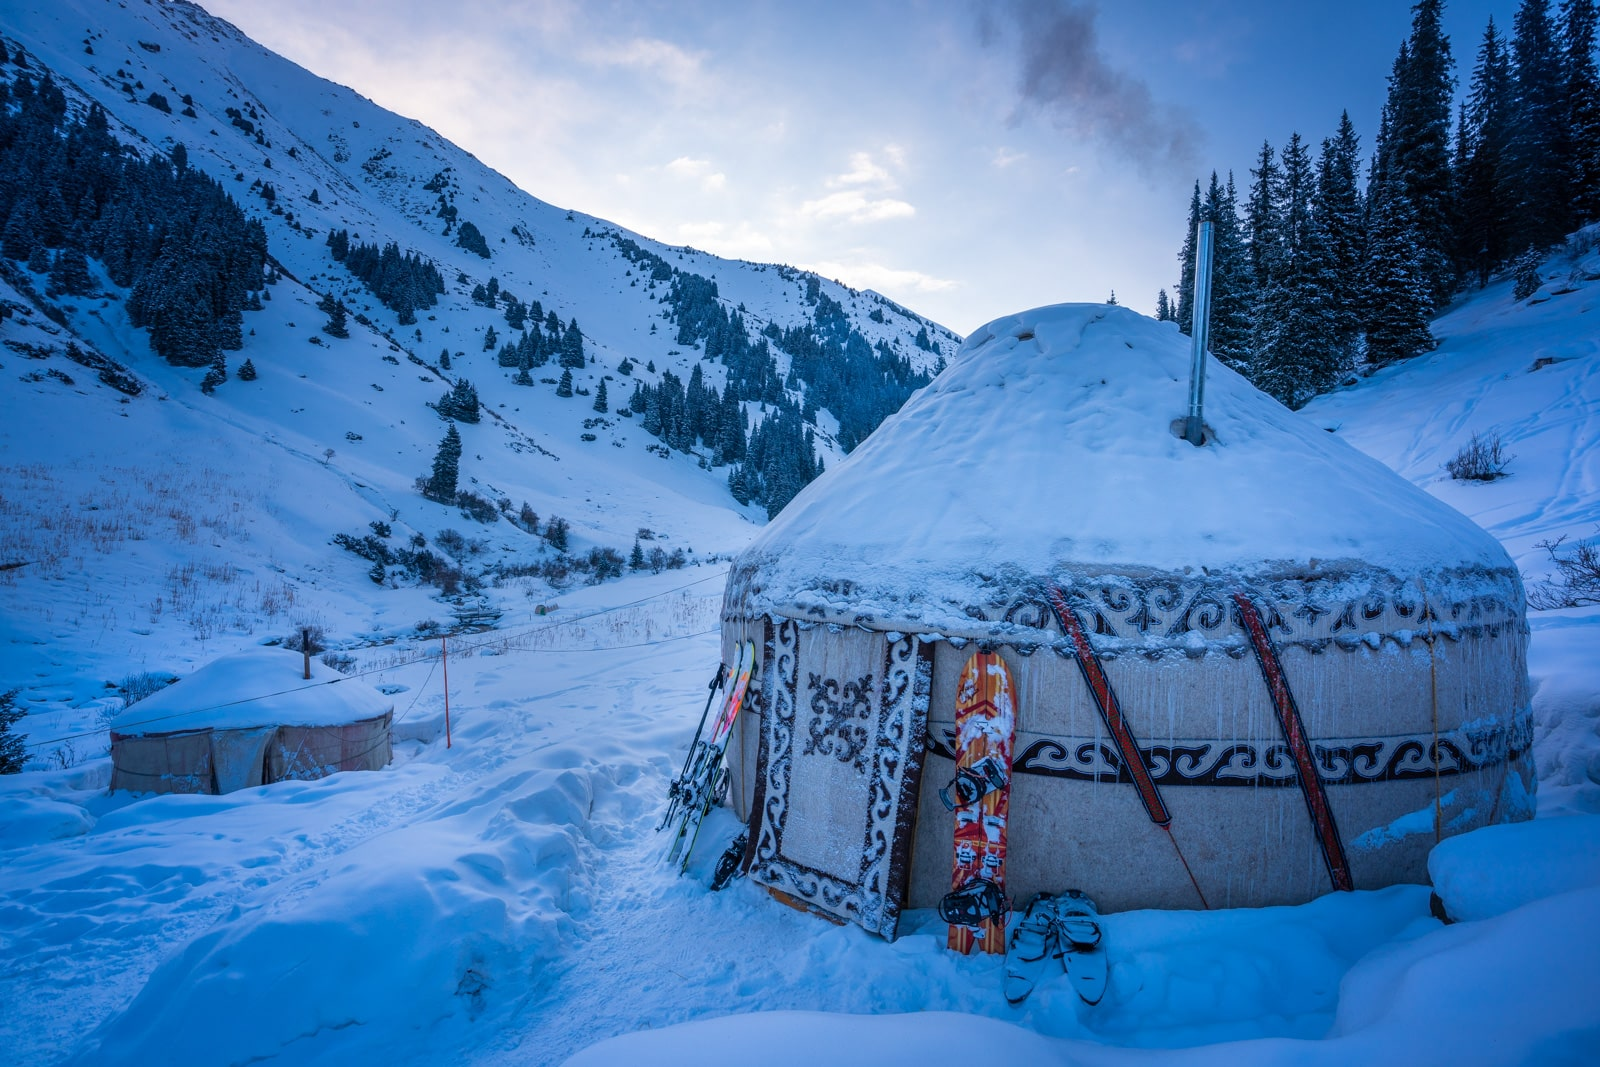 Backcountry ski yurt at sunrise in Boz Uchuk, Kyrgyzstan